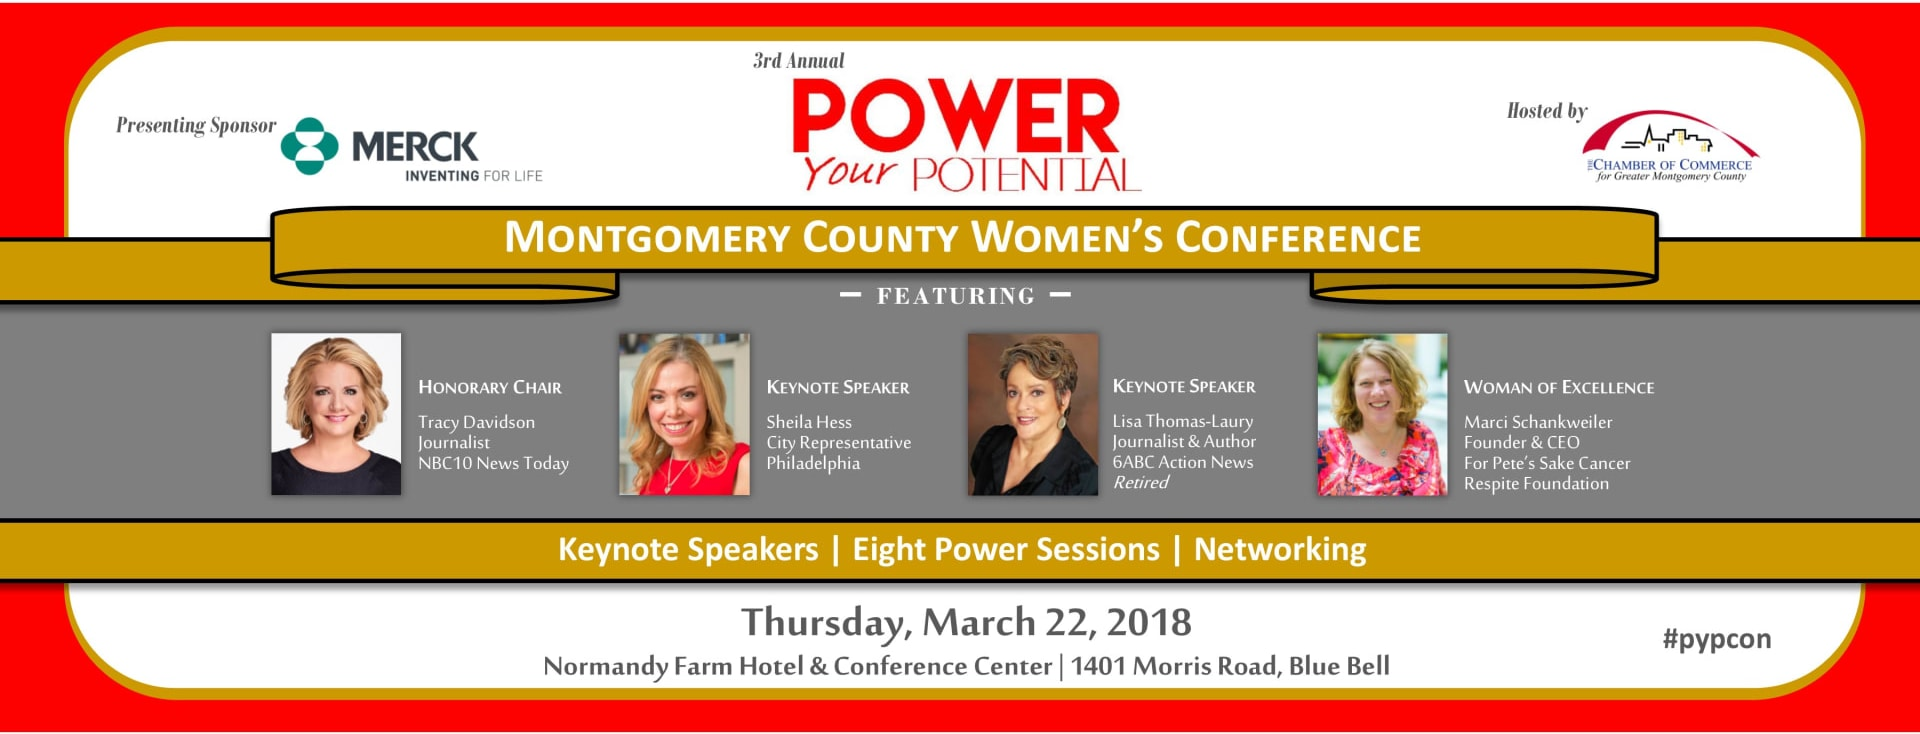 power your potential, montgomery county women's conference, women in business, honorary chair, tracy davidson, keynote speaker, sheila hess, lisa thomas laury, woman of excellence, marci schankweiler